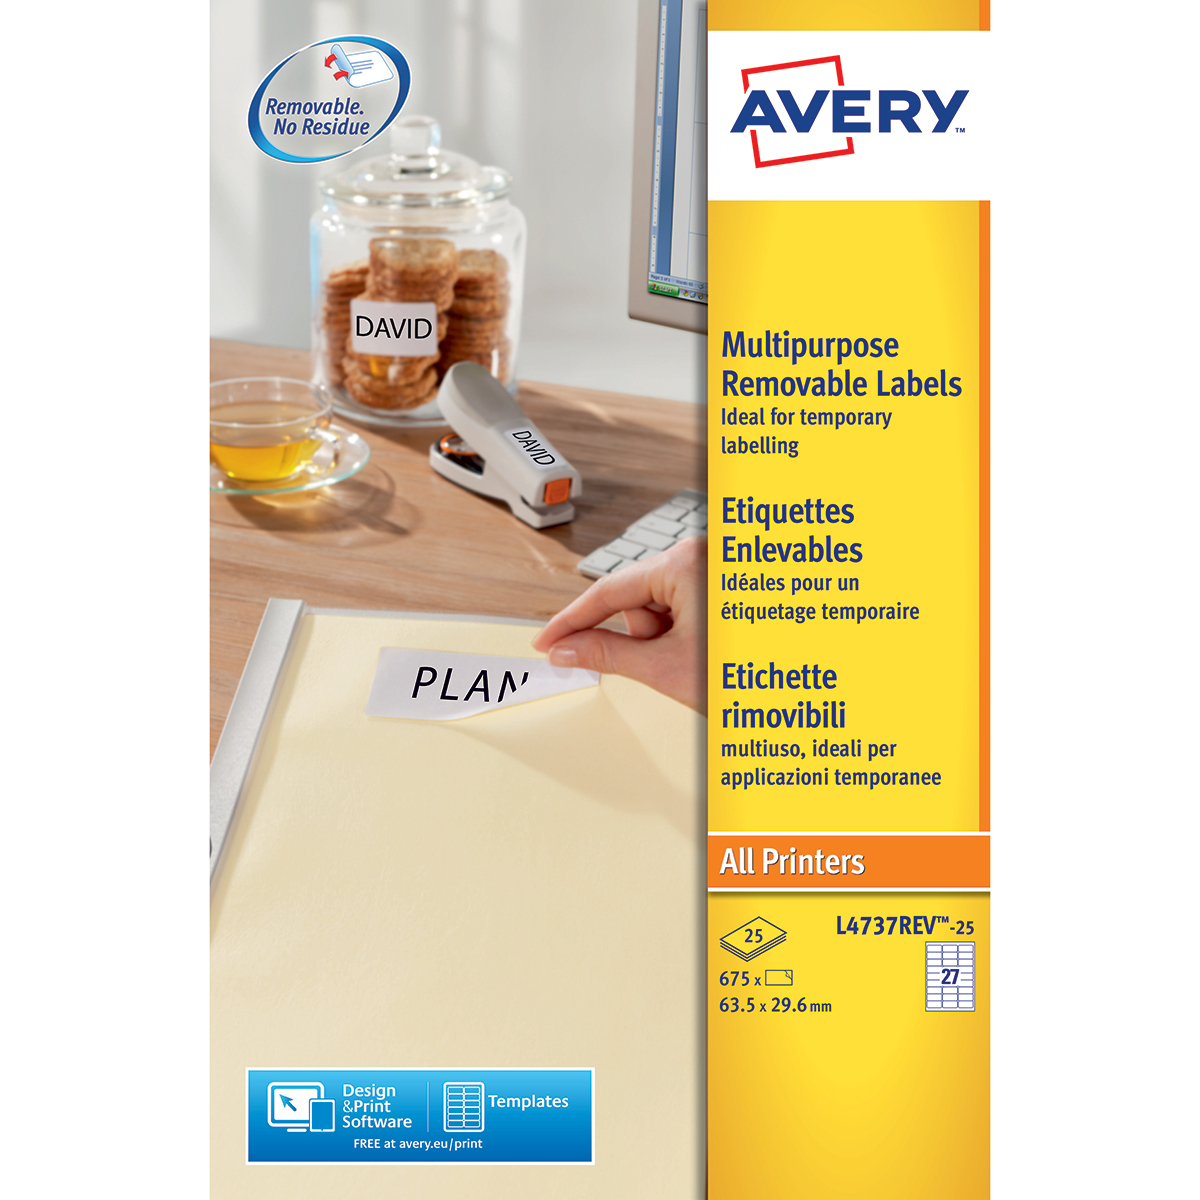 Avery L4737REV-25 Multipurpose Removable Labels 25 sheets - 27 Labels per Sheet